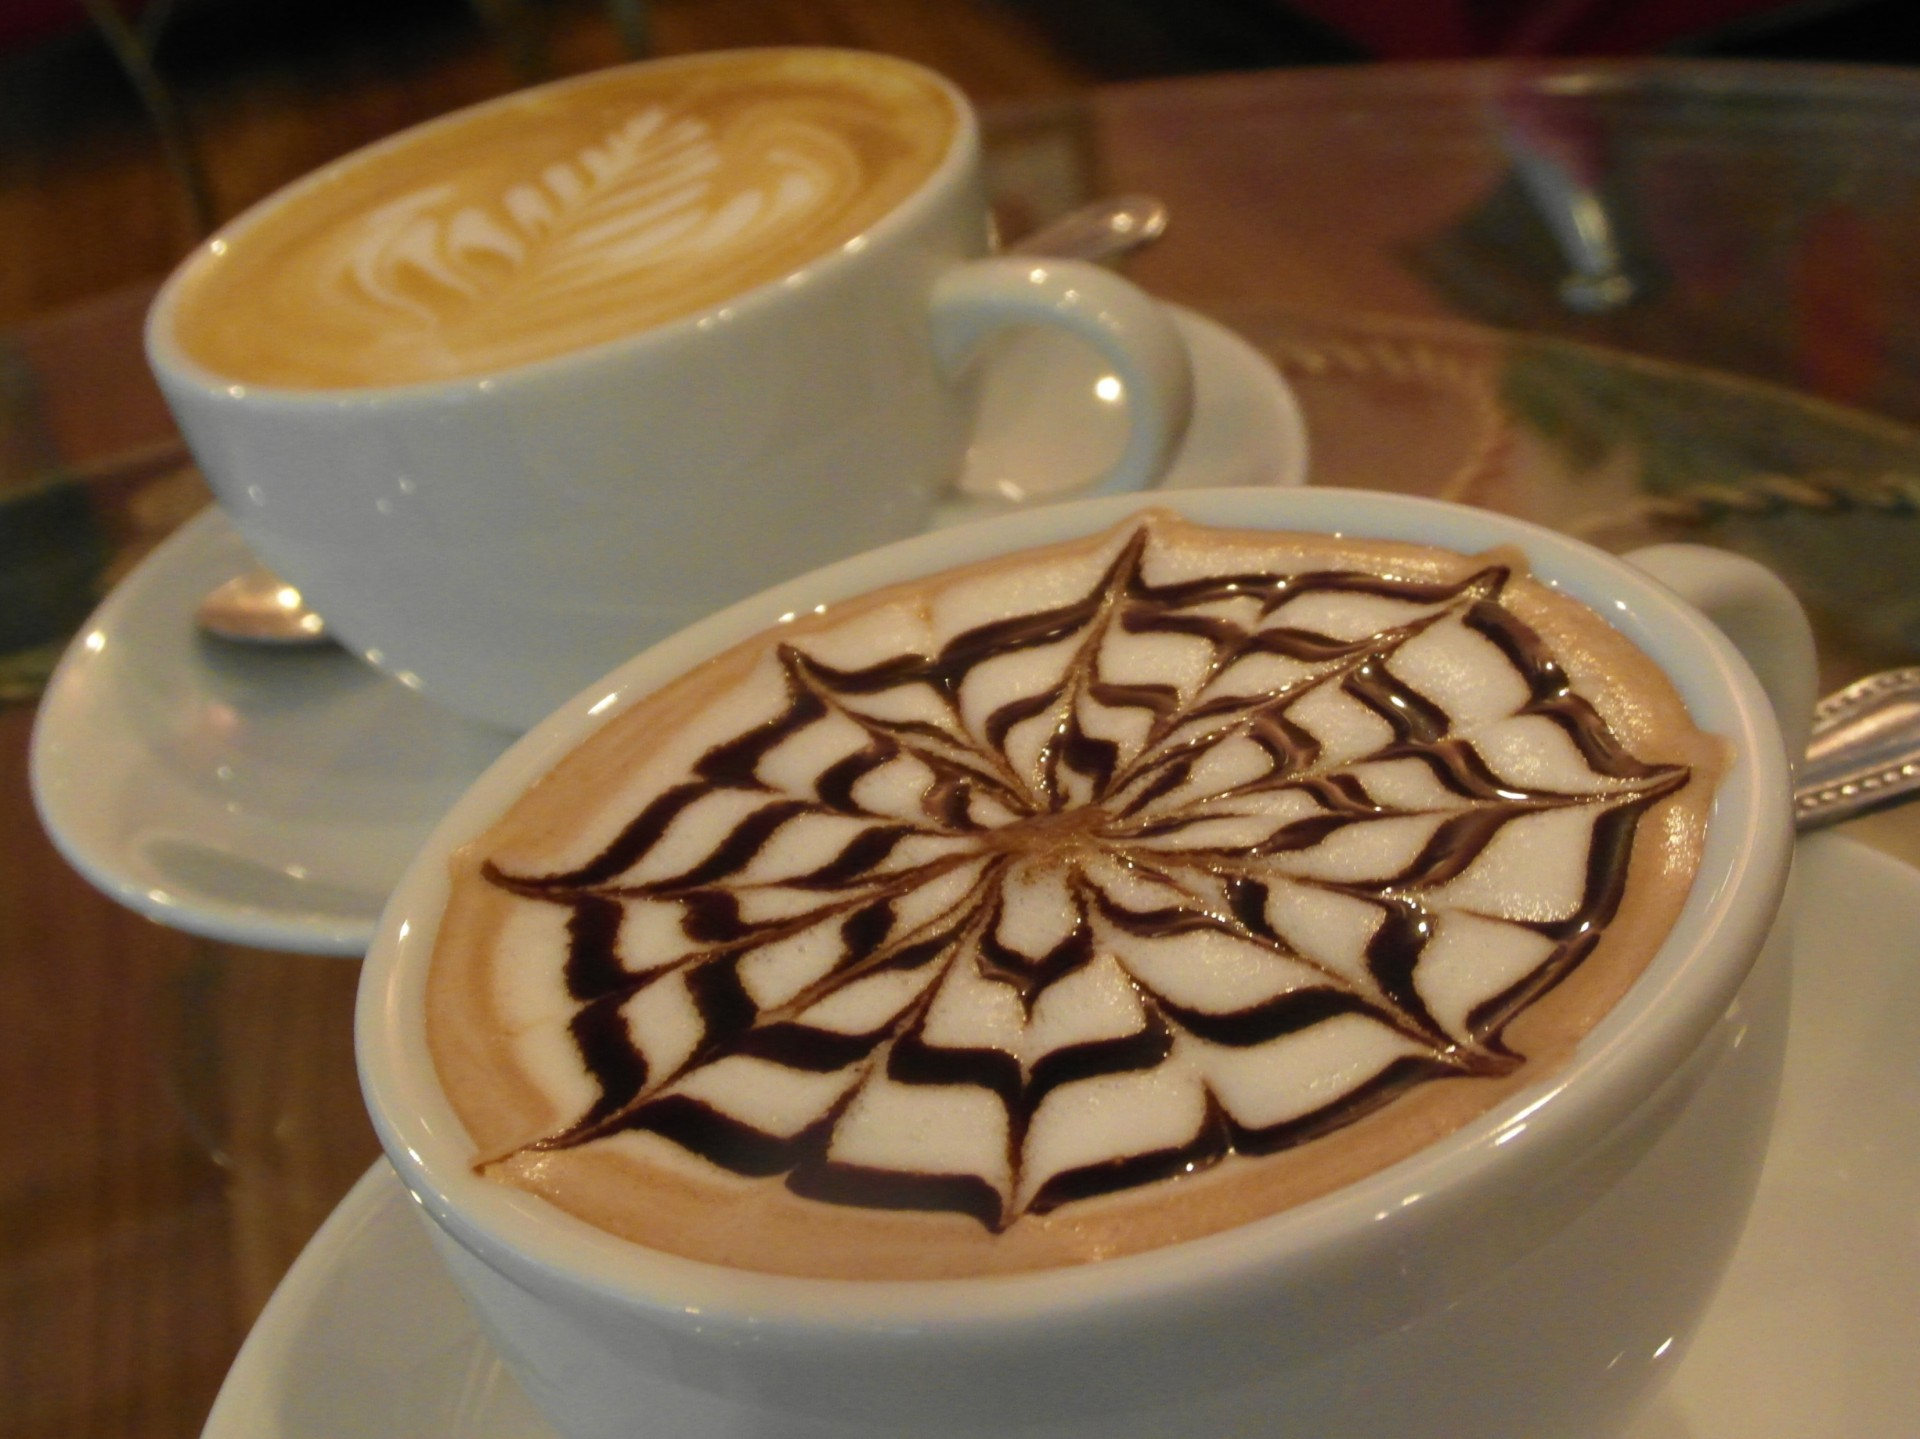 Coffee Art Patterns Free Stock Photo - Public Domain Pictures